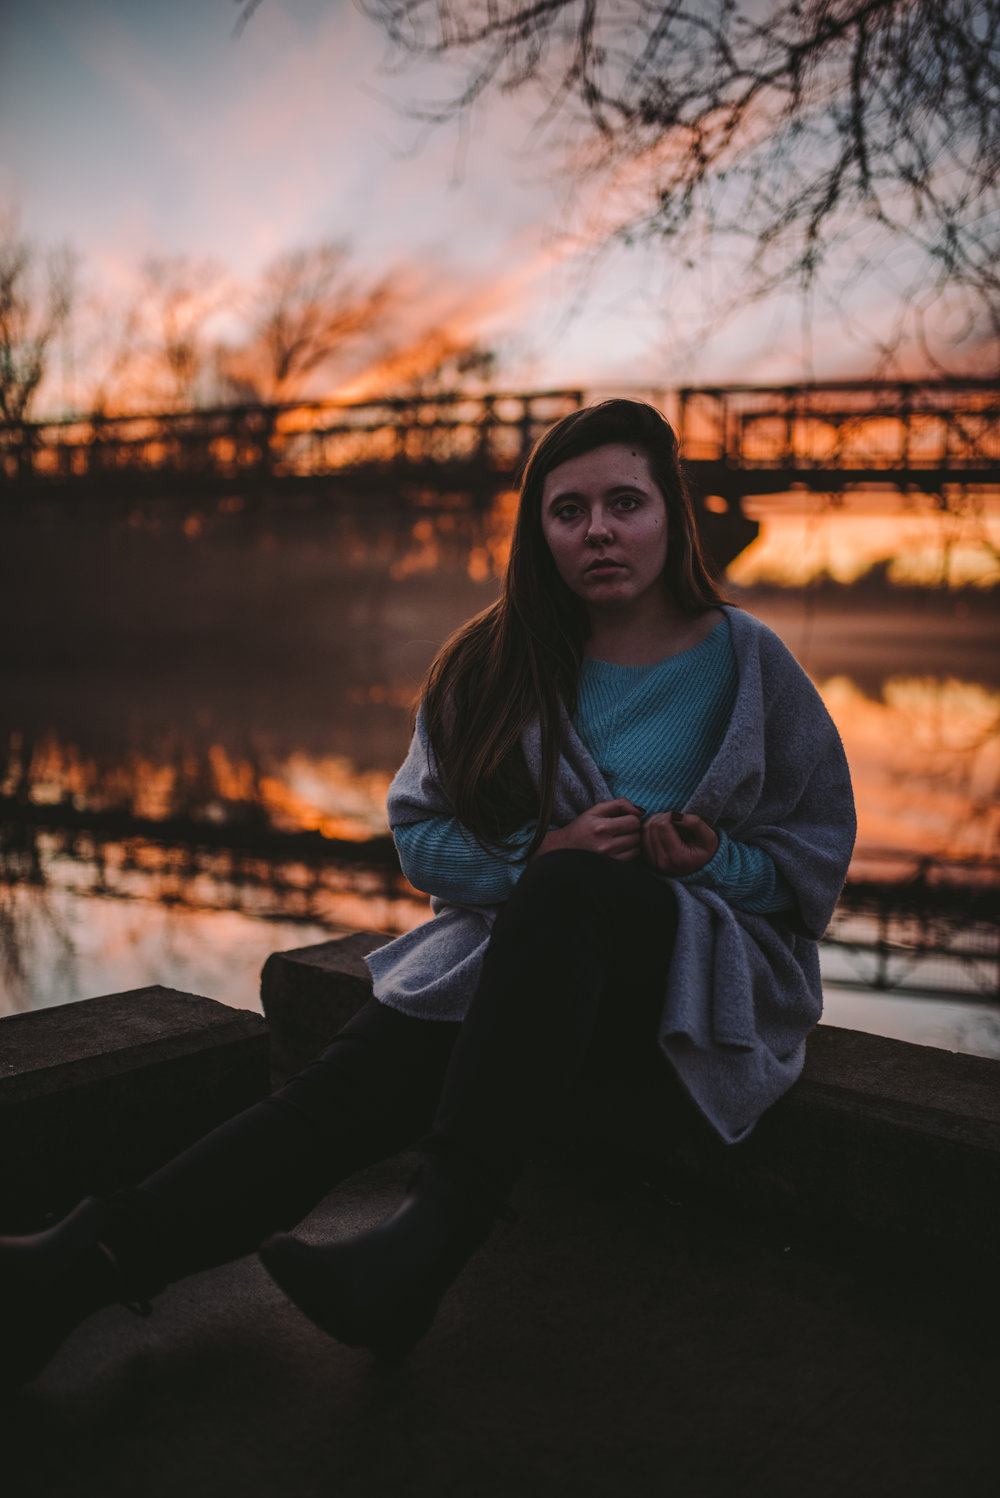 Sunset_IndianapolisIndiana_January2018_Senior Photography In Tempe_ArizonaSeniorPhotographer_SamanthaRosePhotography_final_-7.jpg